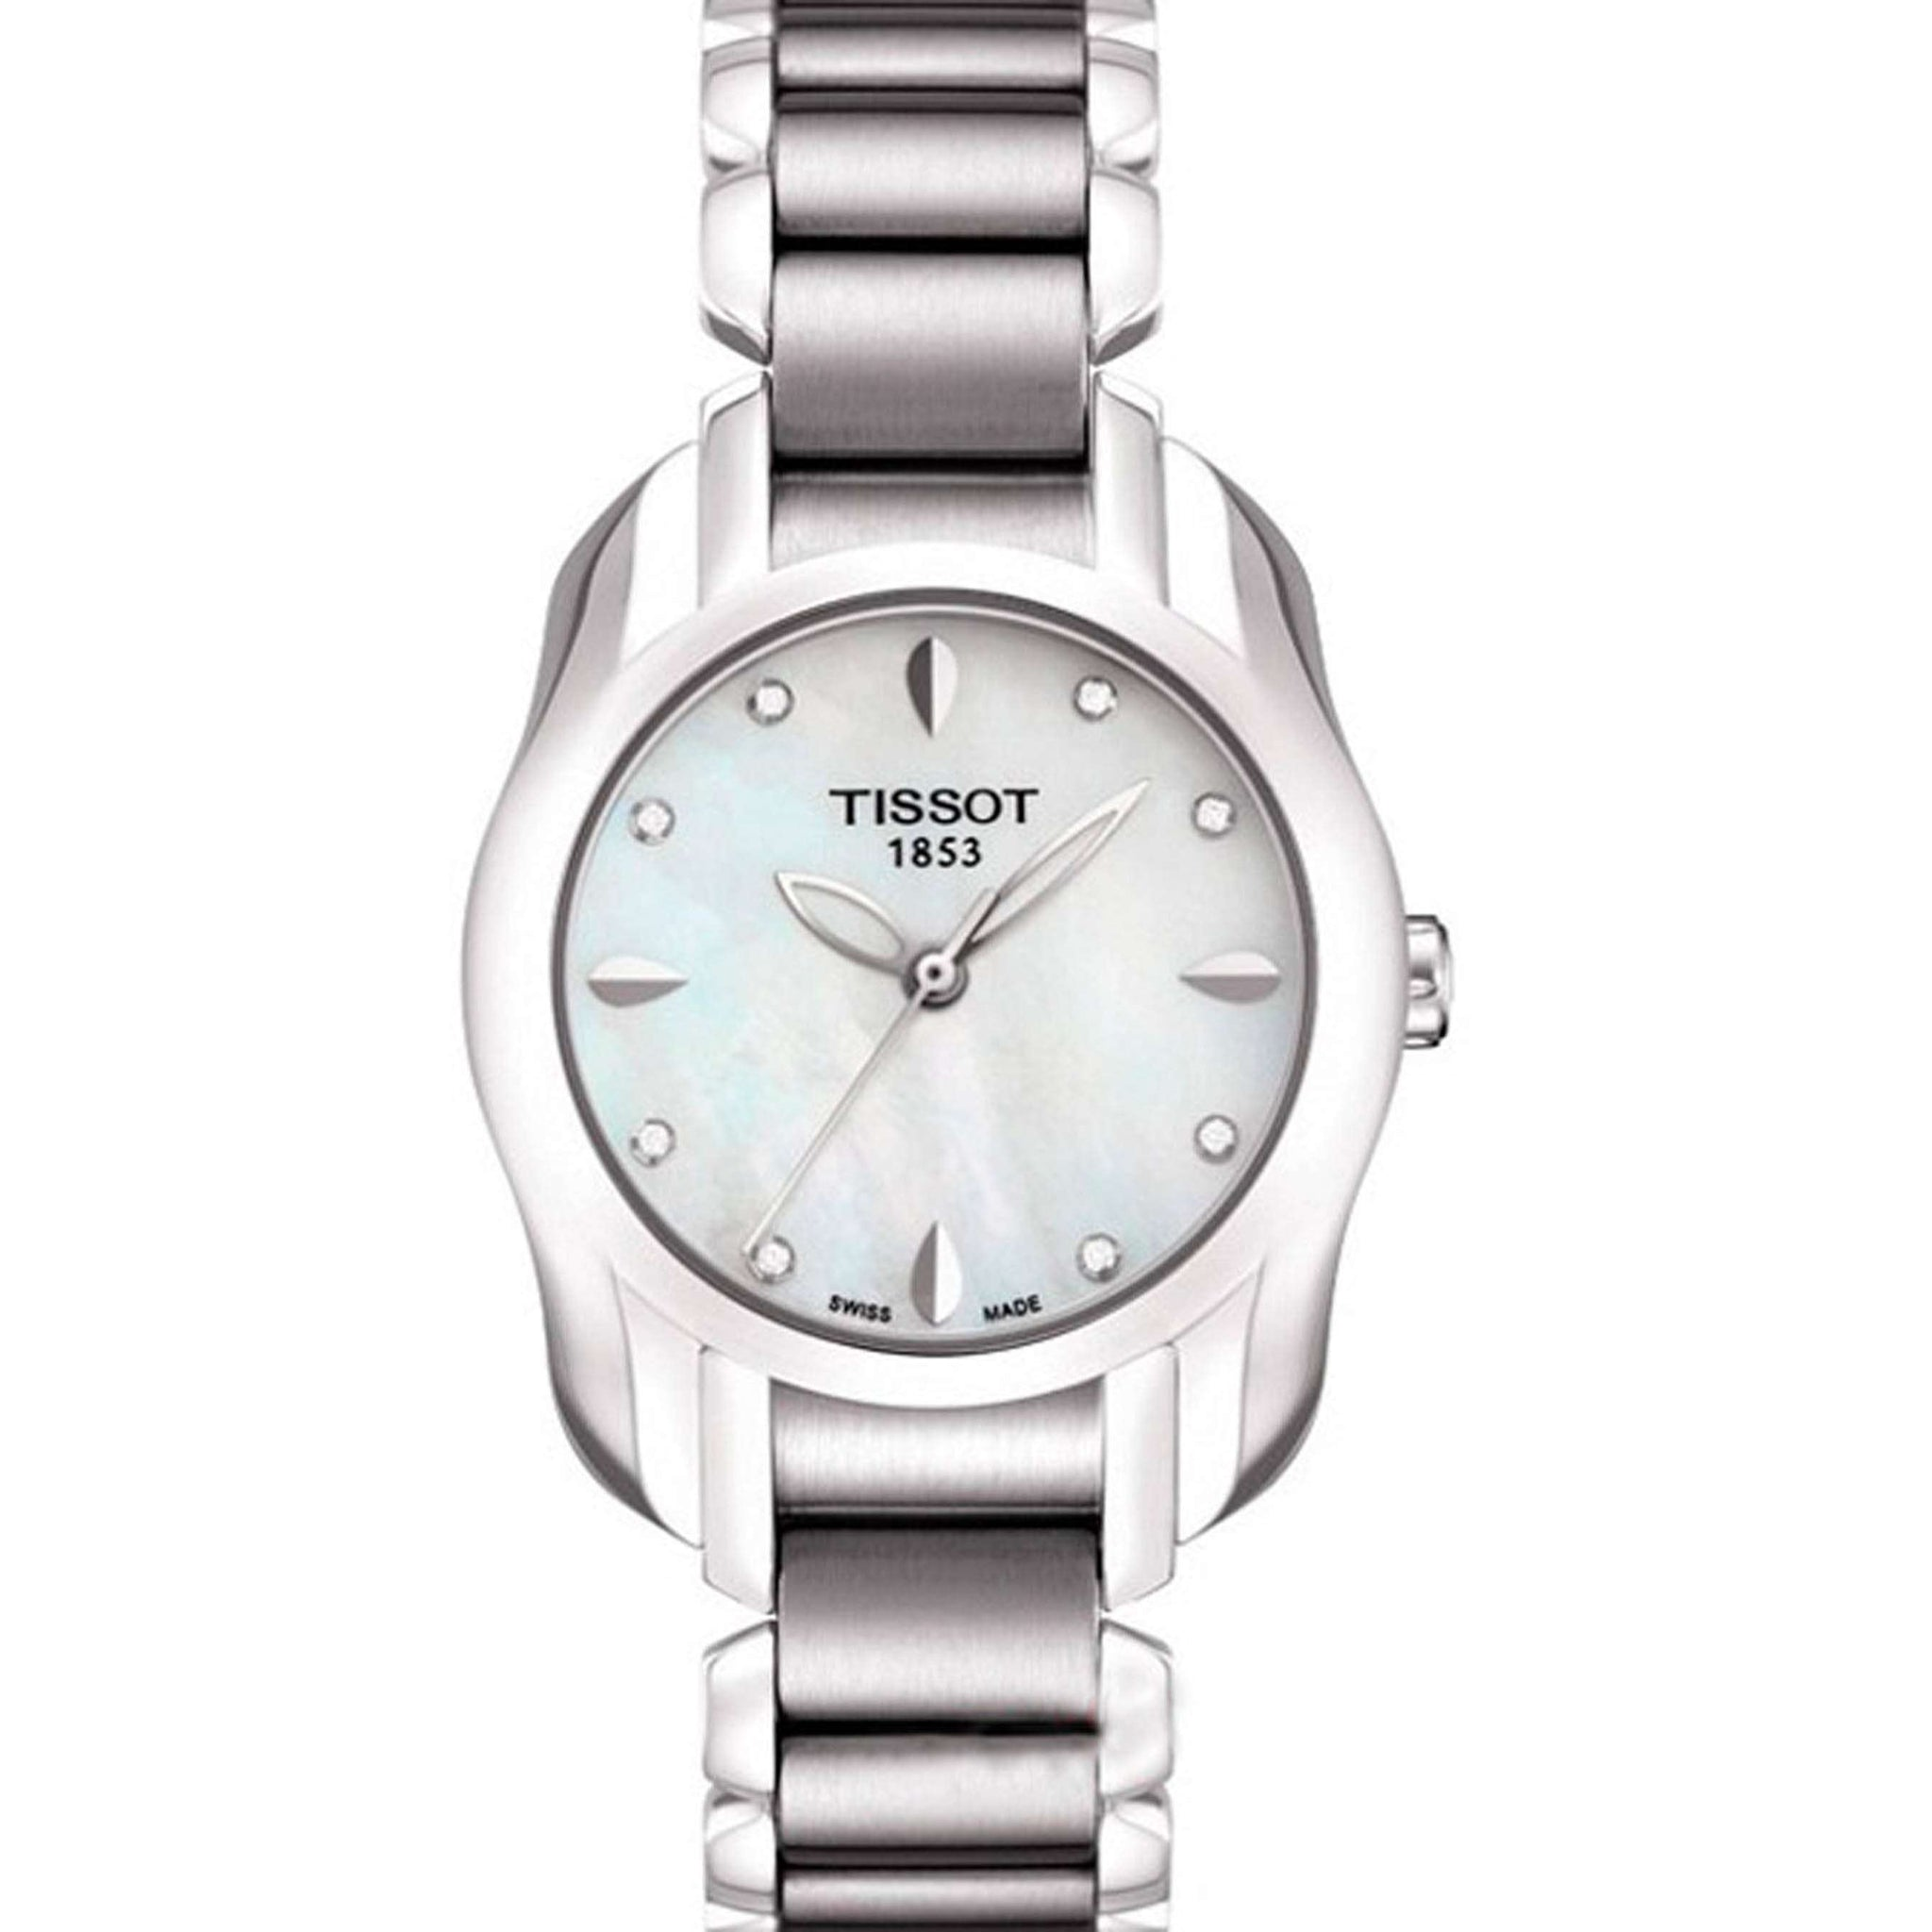 Reloj Tissot T023.210.11.116.00 para Mujer Pulso Acero Inoxidable Silver Clasico Supershop